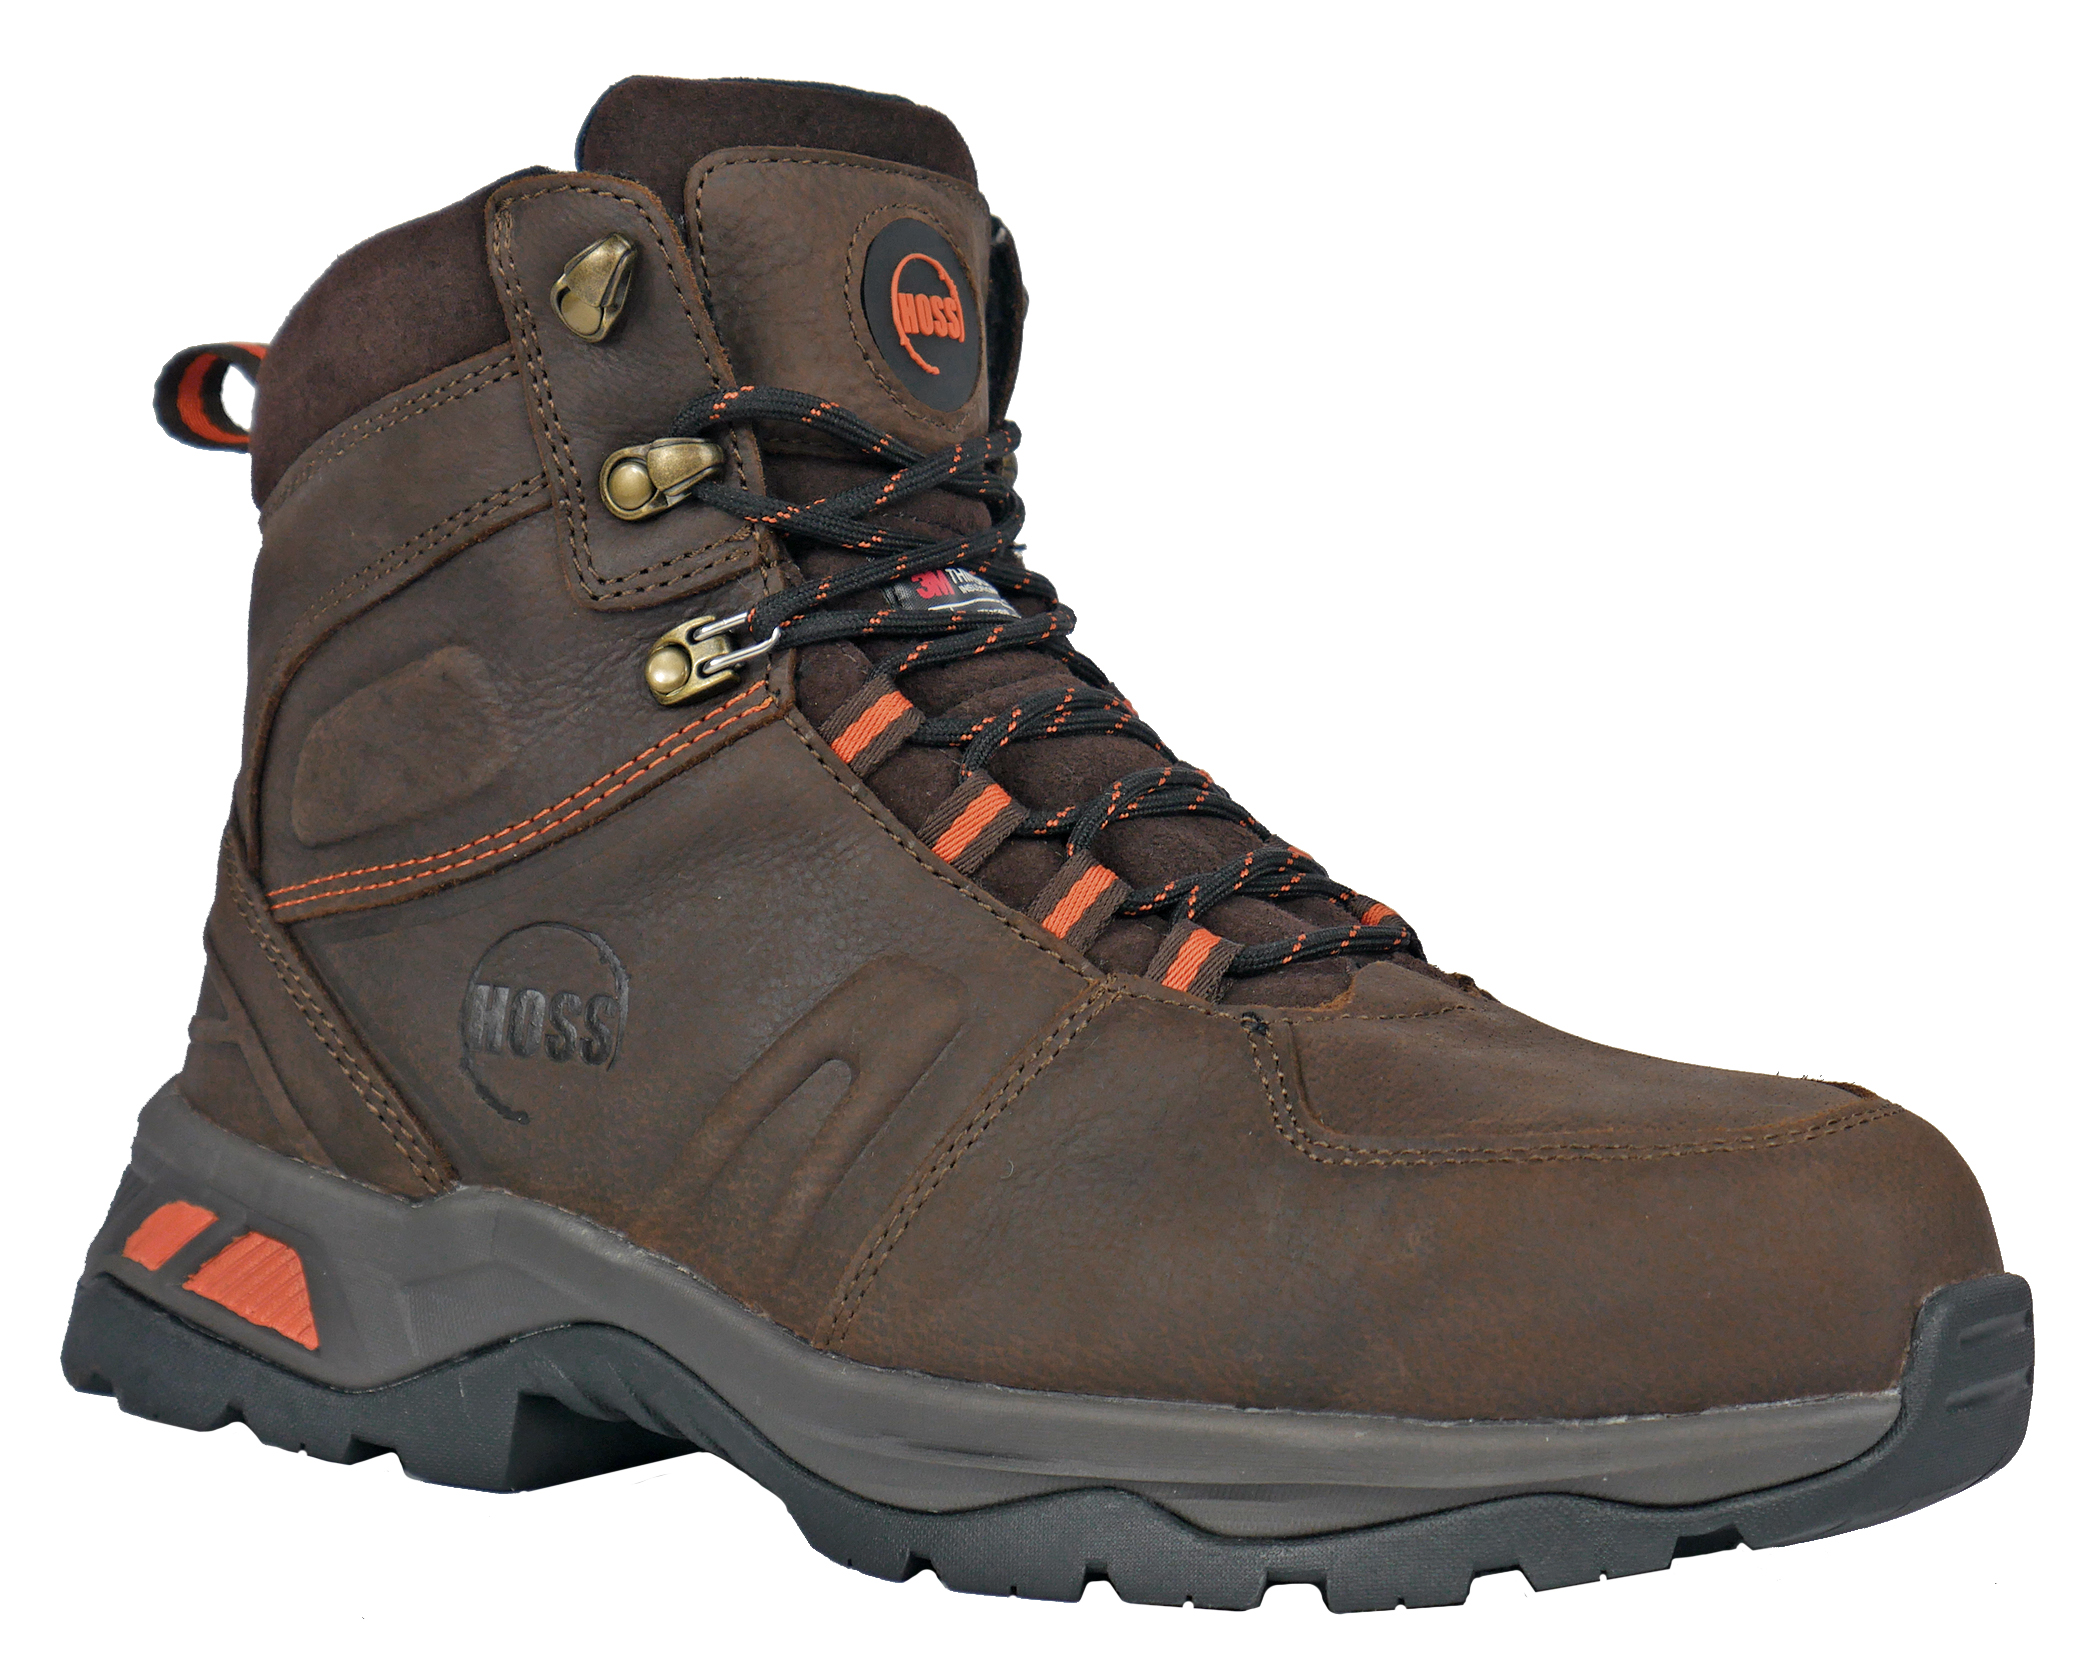 Hoss 60242 waterproof insulated composite safety toe boot